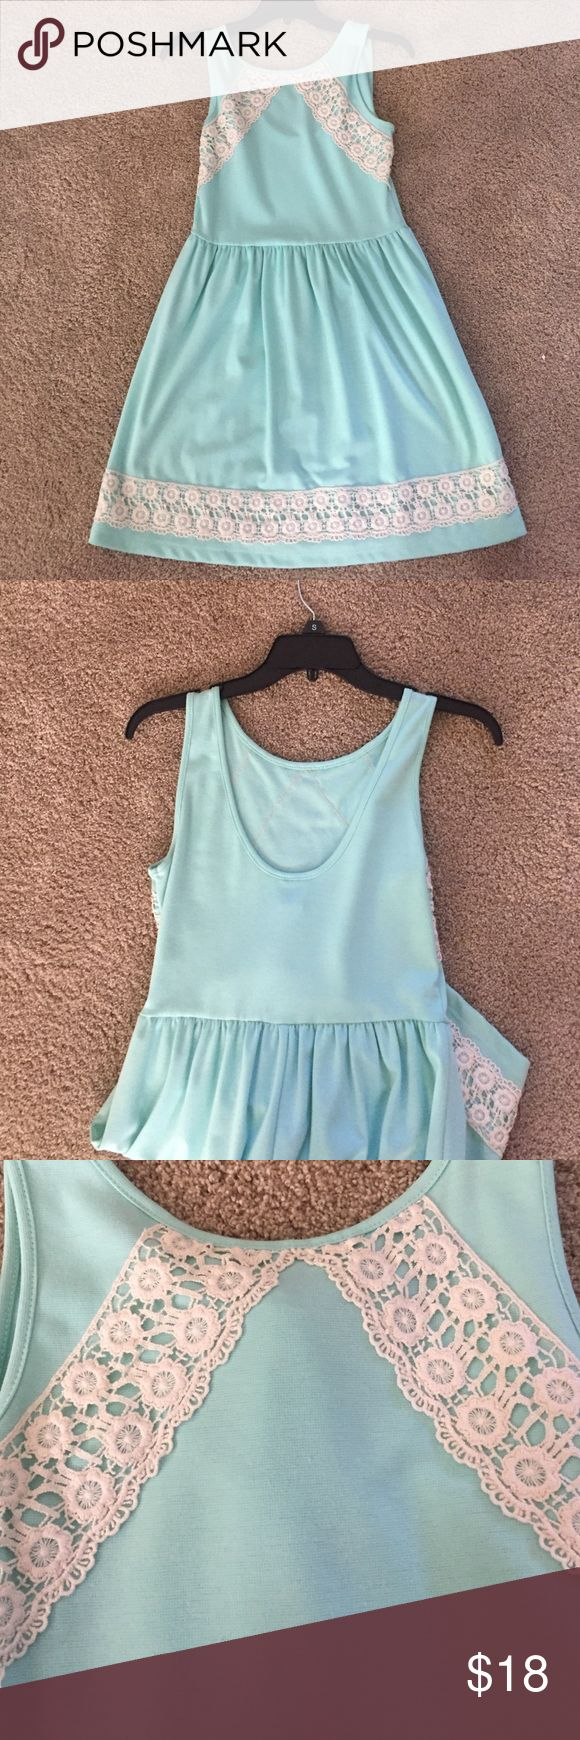 Juniors Dress The perfect, easy summer dress that you can throw on for anything! Dresses